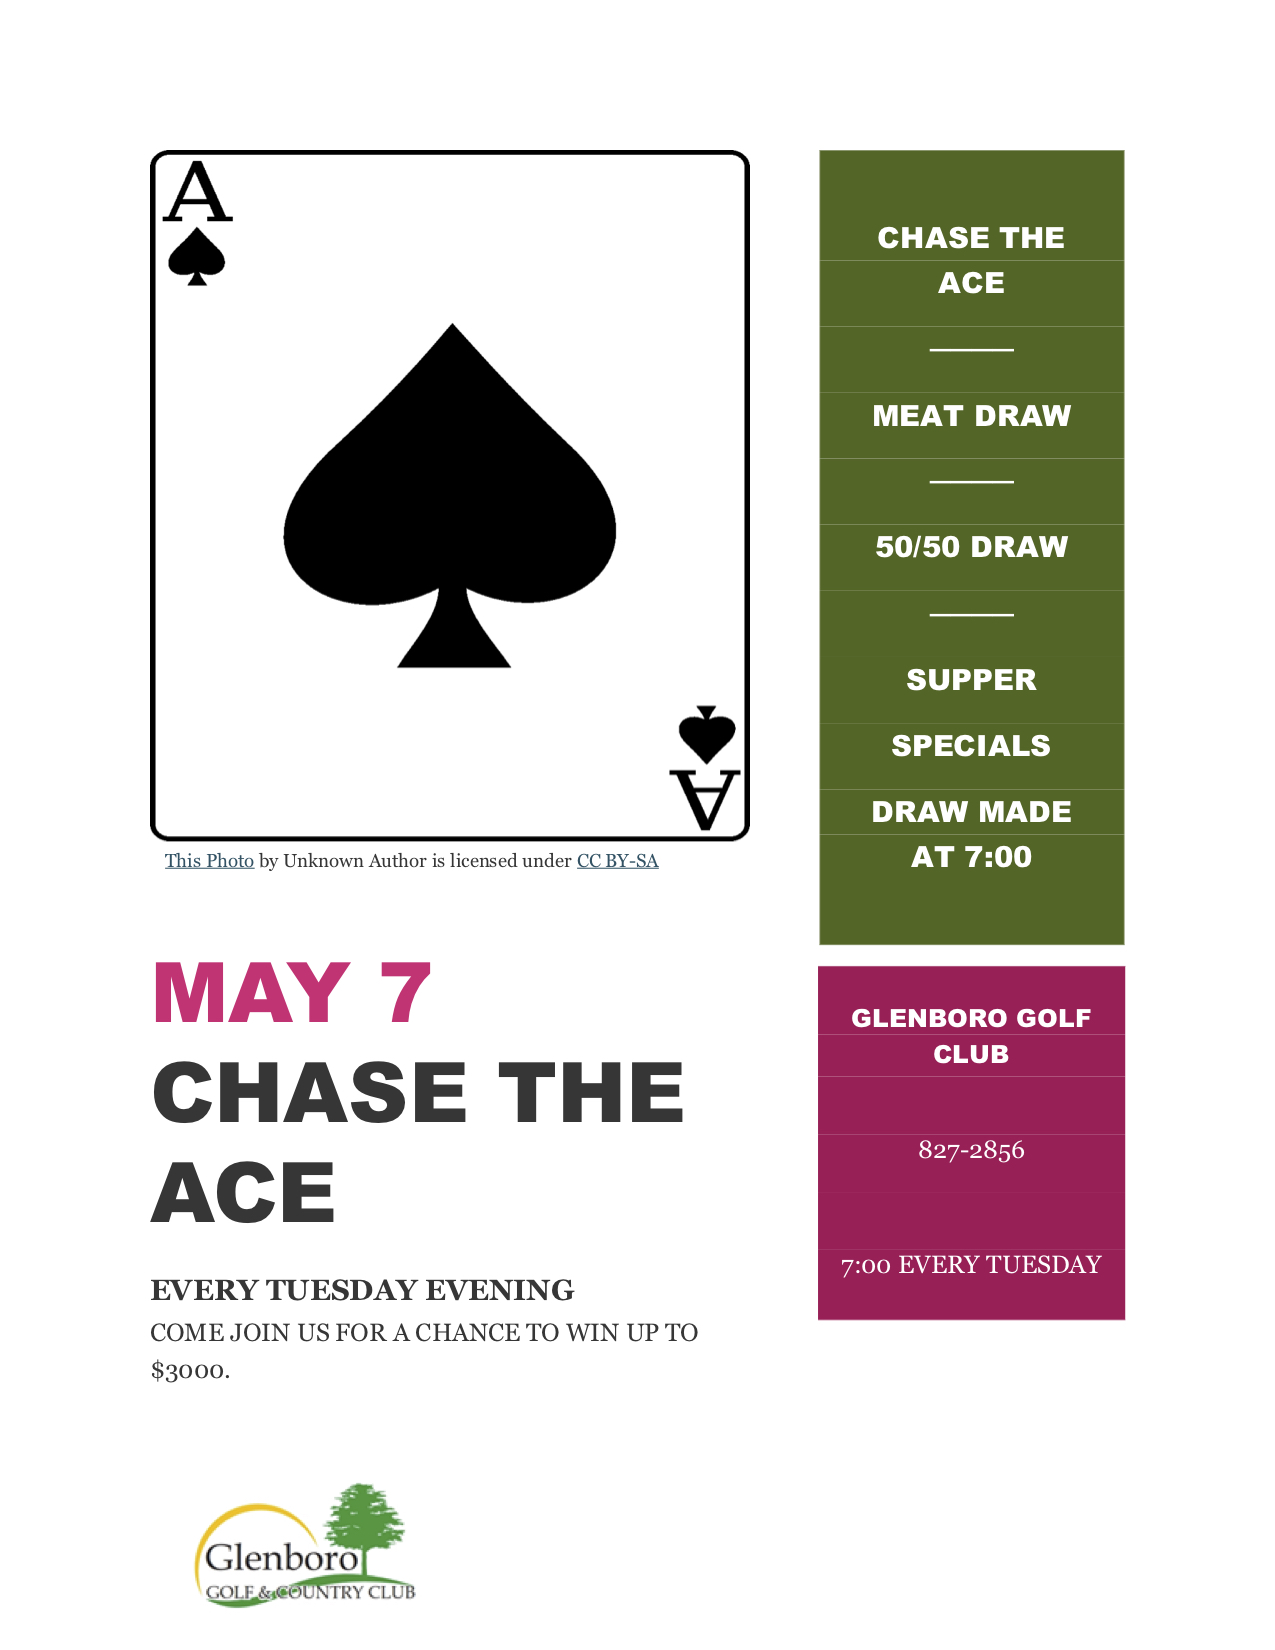 CHASE THE ACE 2019.jpg